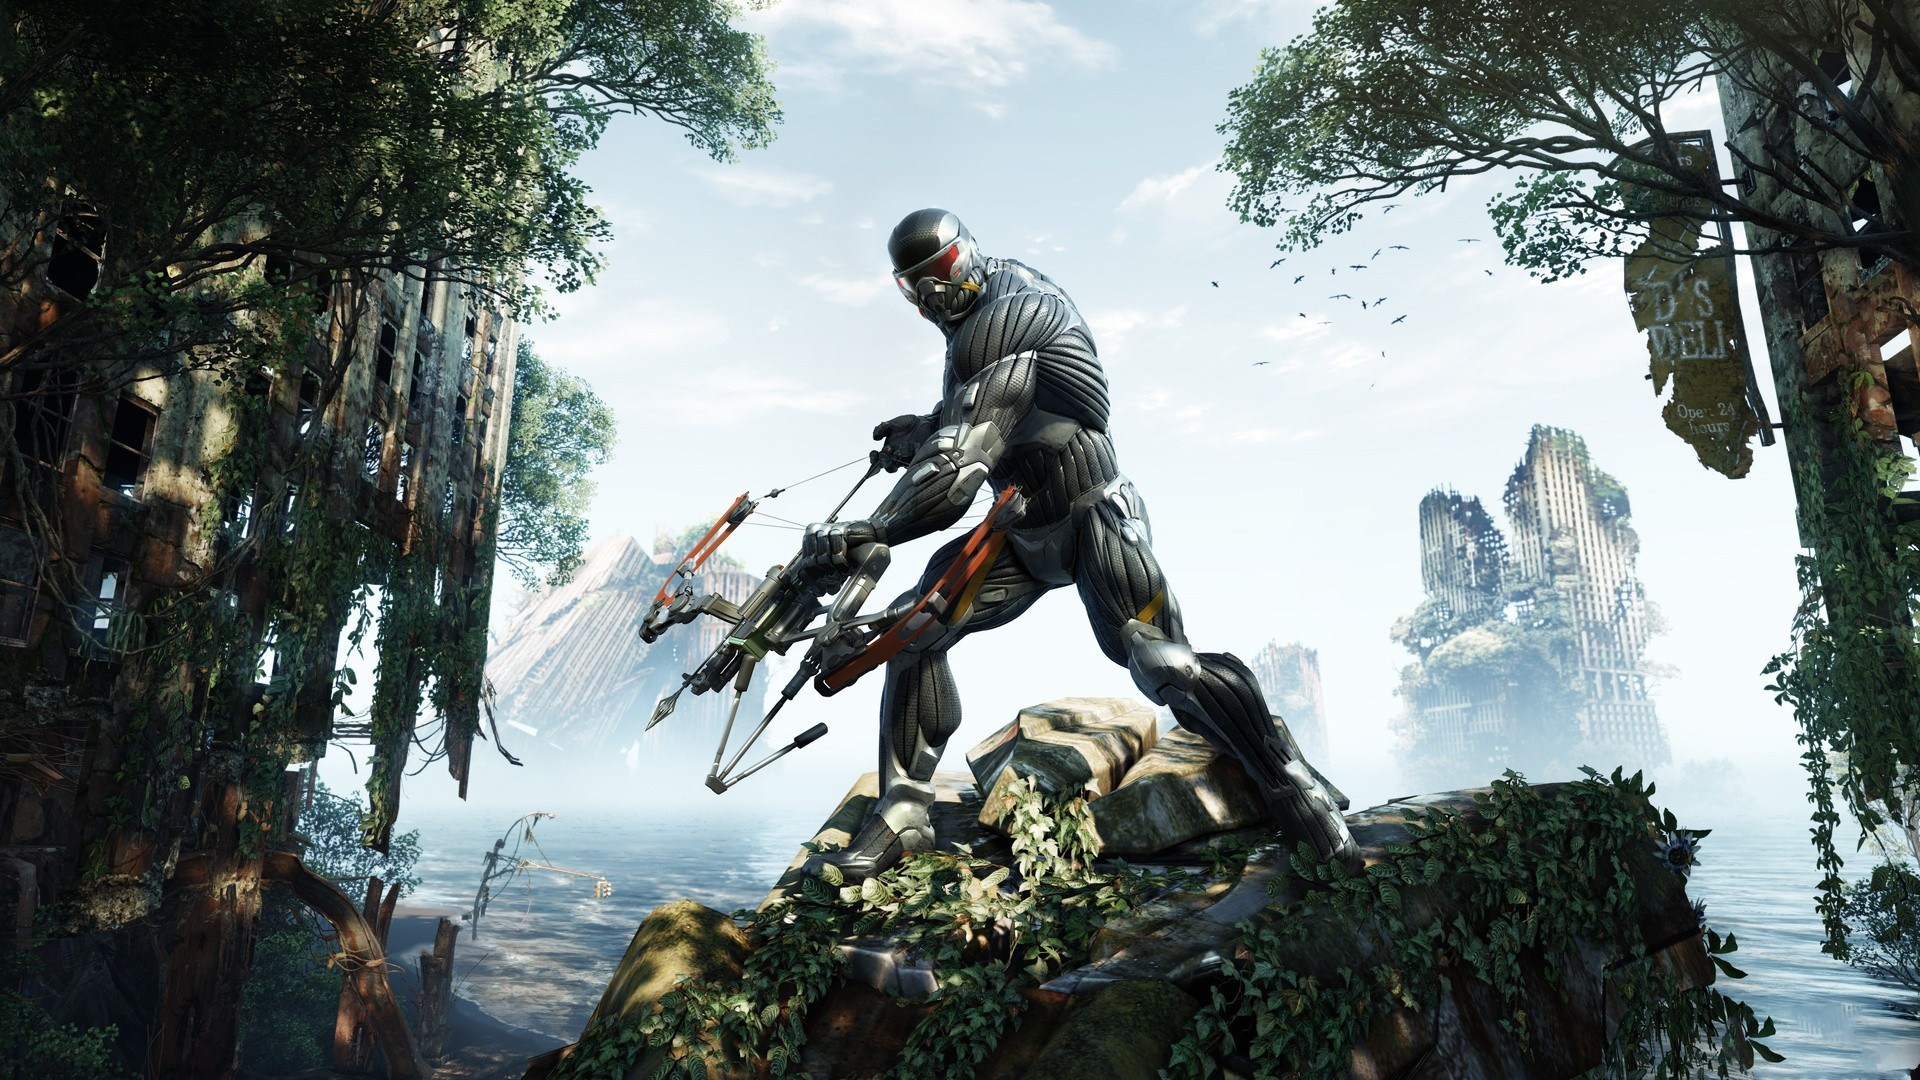 crysis 3 ruin forest prophet bow